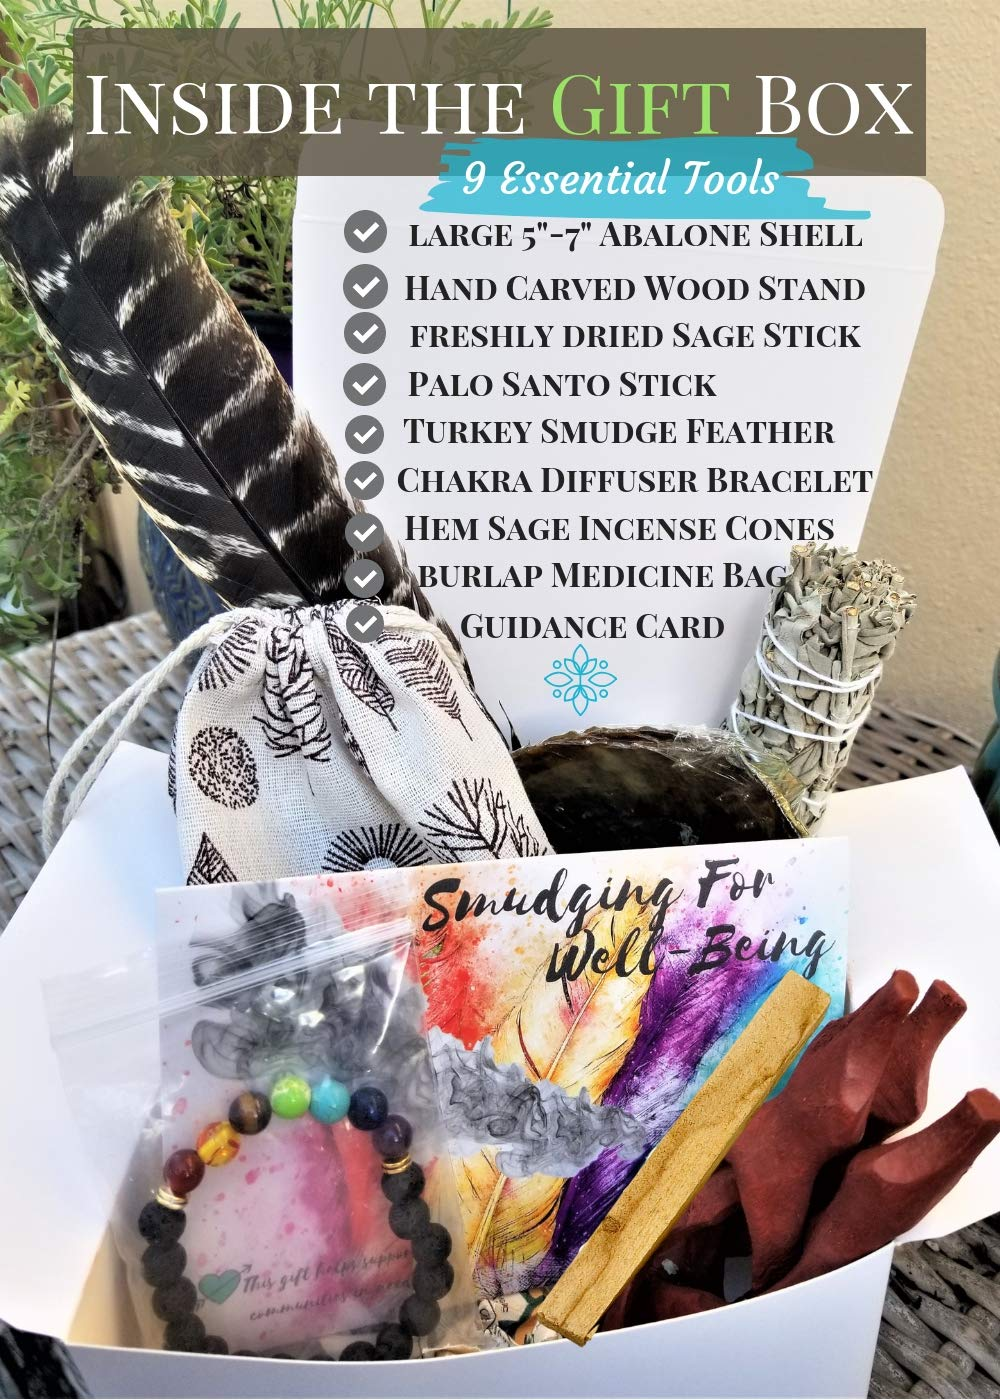 Smudge Kit Spiritual Set - Large Abalone Shell, Wood Stand, White Sage Smudging Stick, Sage Incense Cones, Smudging Feather, 7 Stone Chakra Bracelet